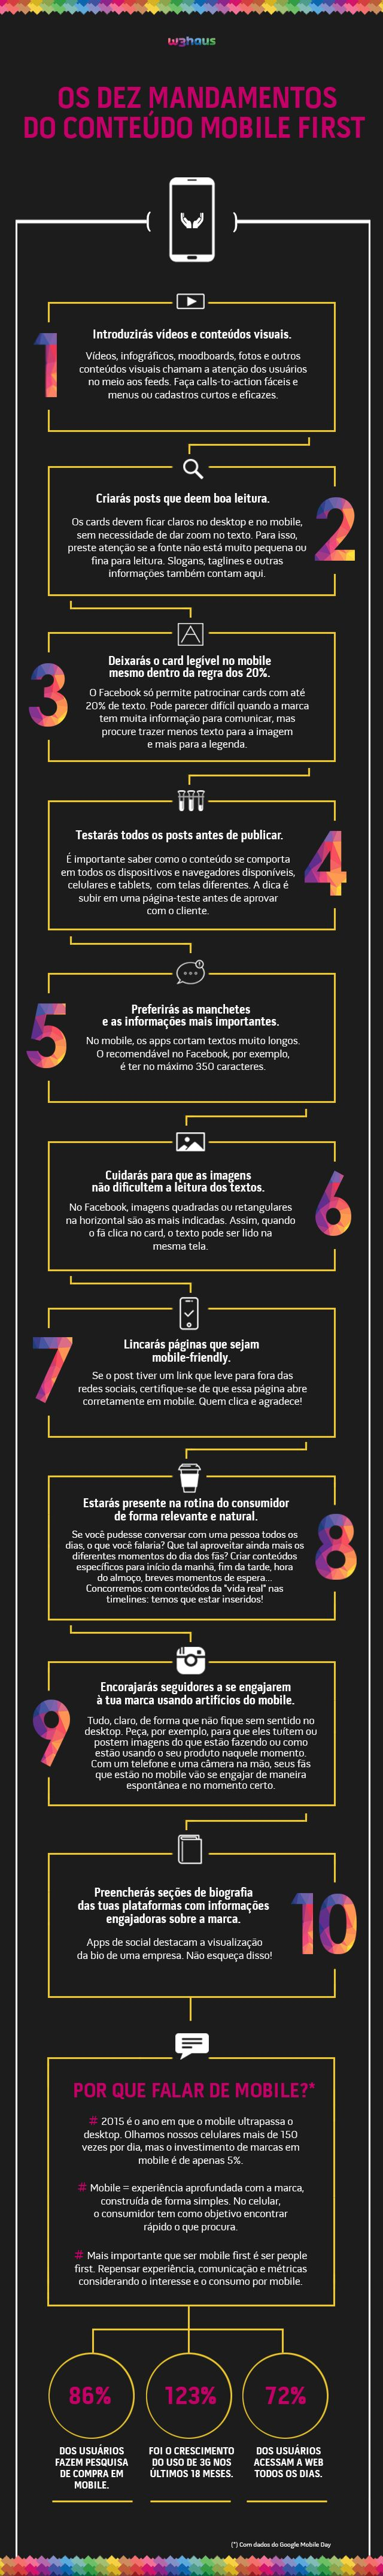 Infográfico: Dez mandamentos do mobile first